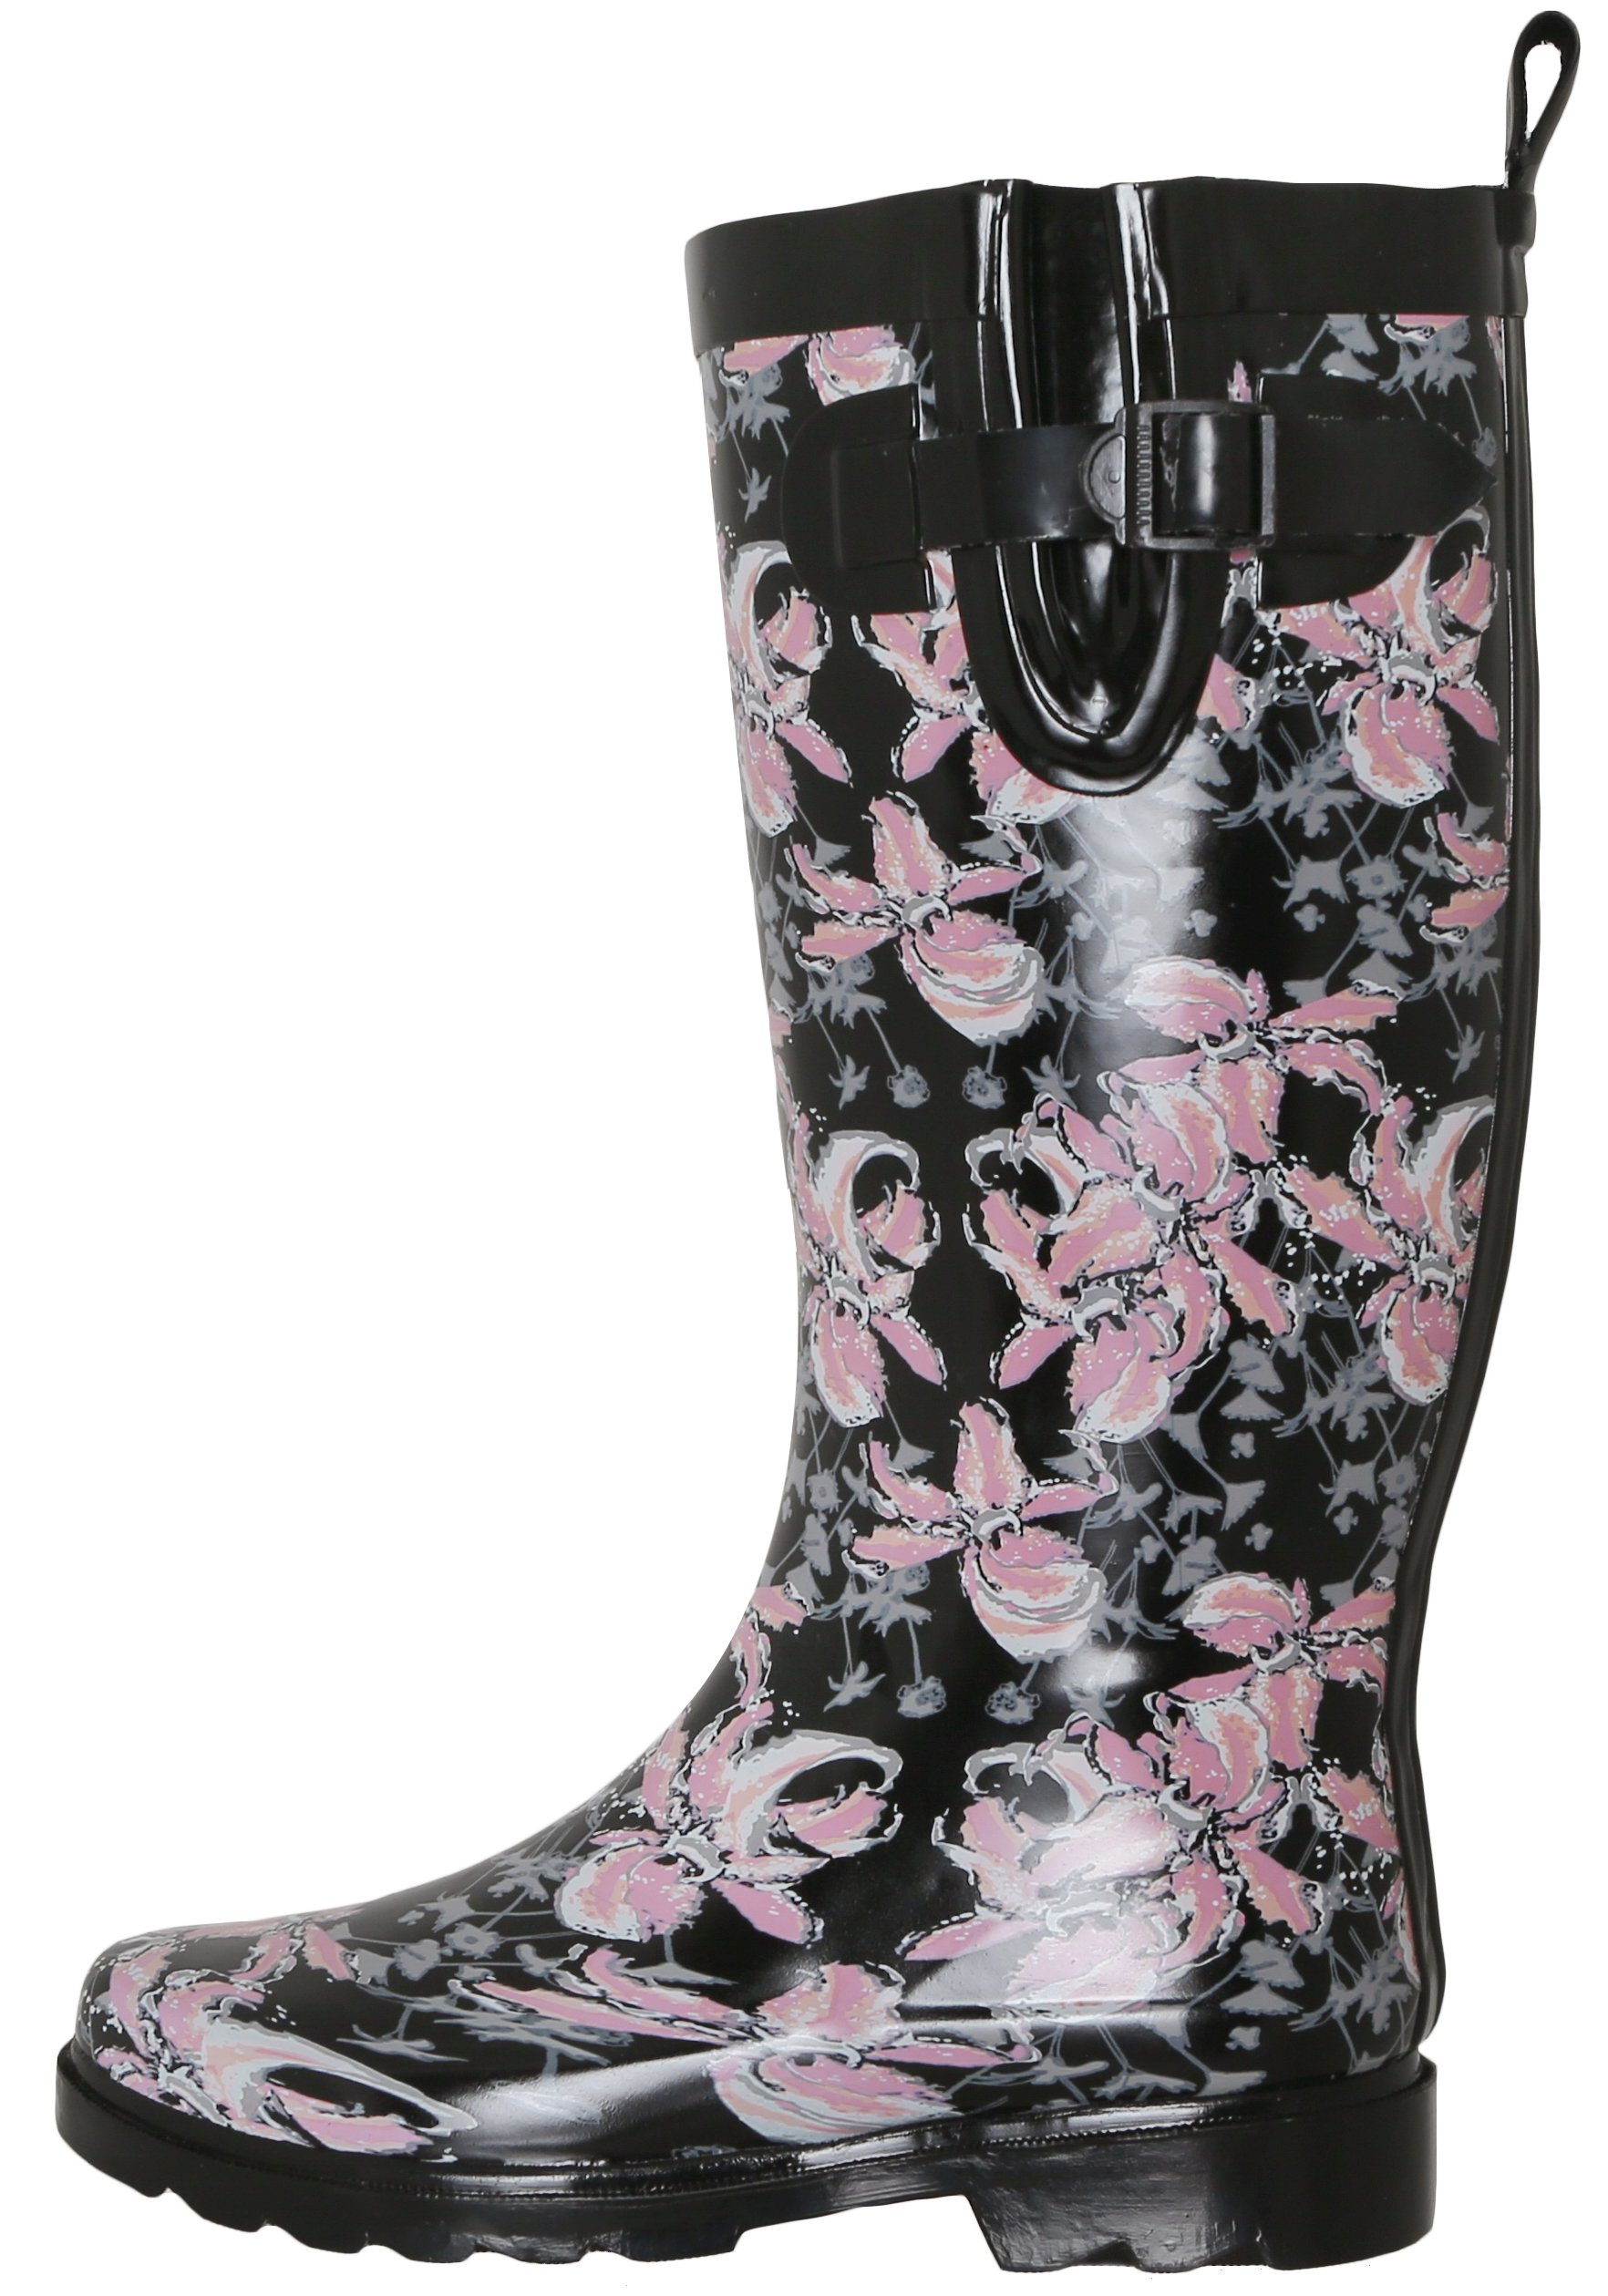 Capelli New York Ladies Shiny Edgy Floral Printed Rain Boot Black Combo 8